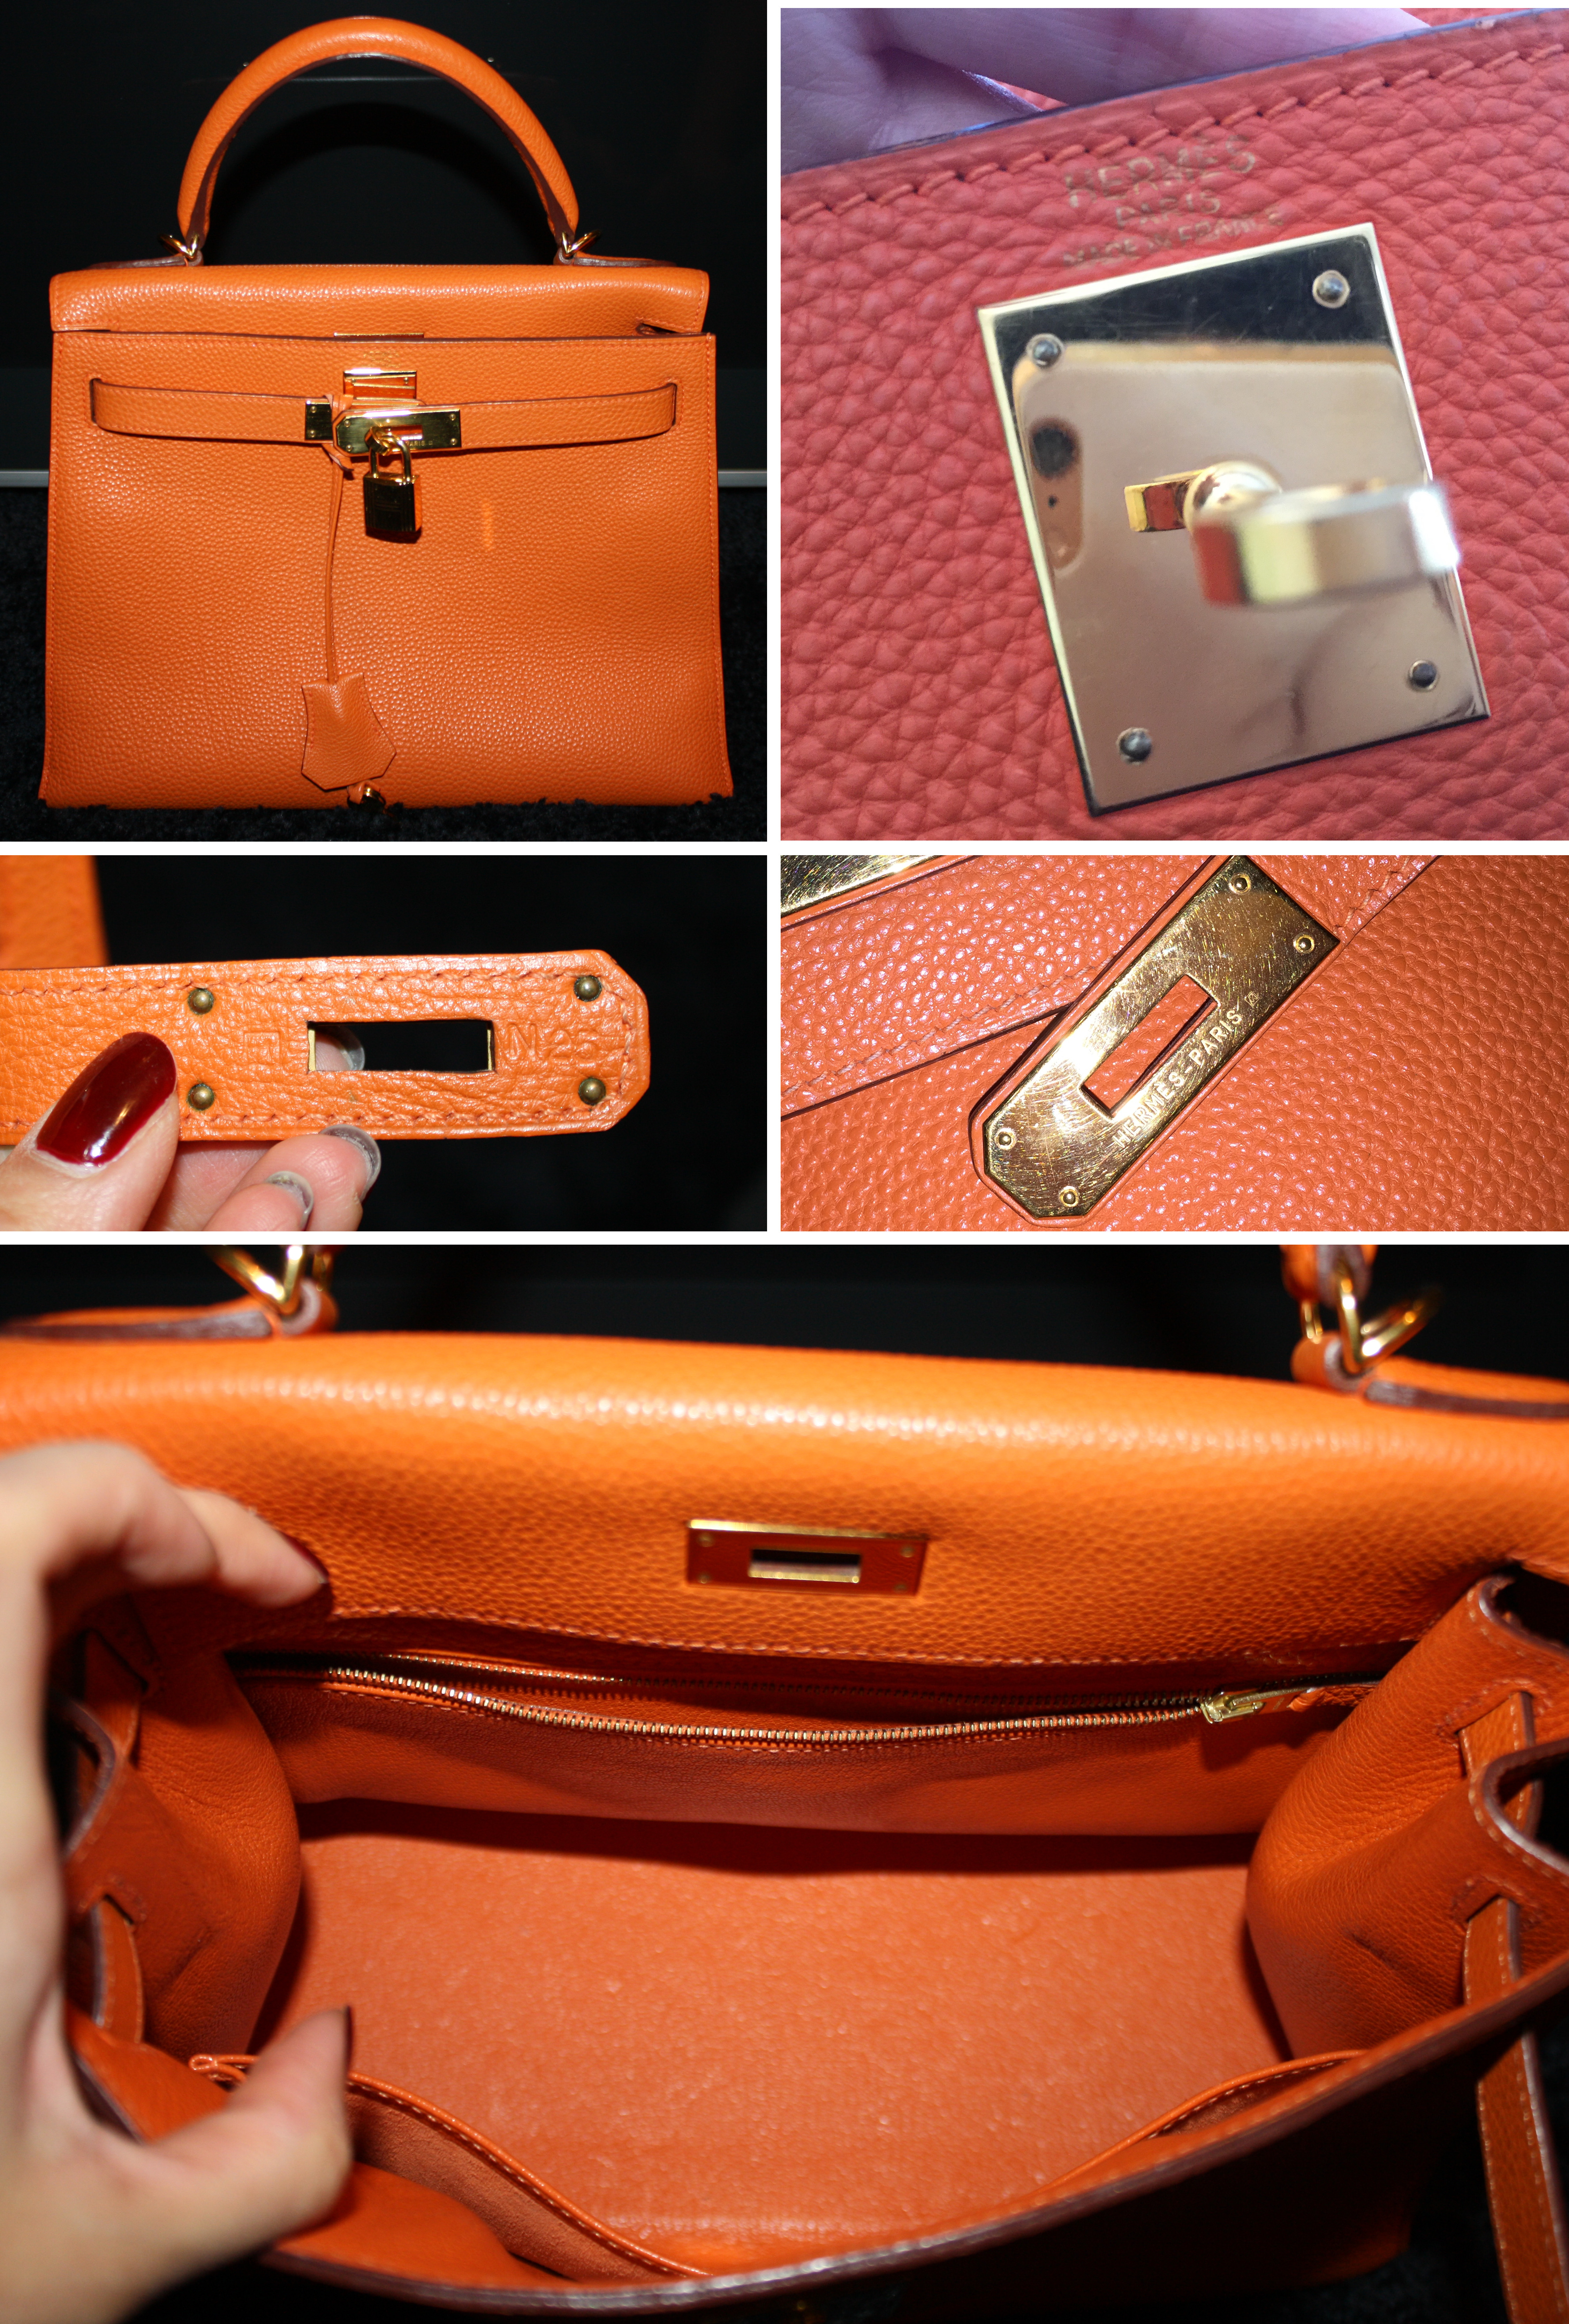 Is this Kelly bag authentic or counterfeit   Authentic Or Counterfeit 1332eda51e3ad